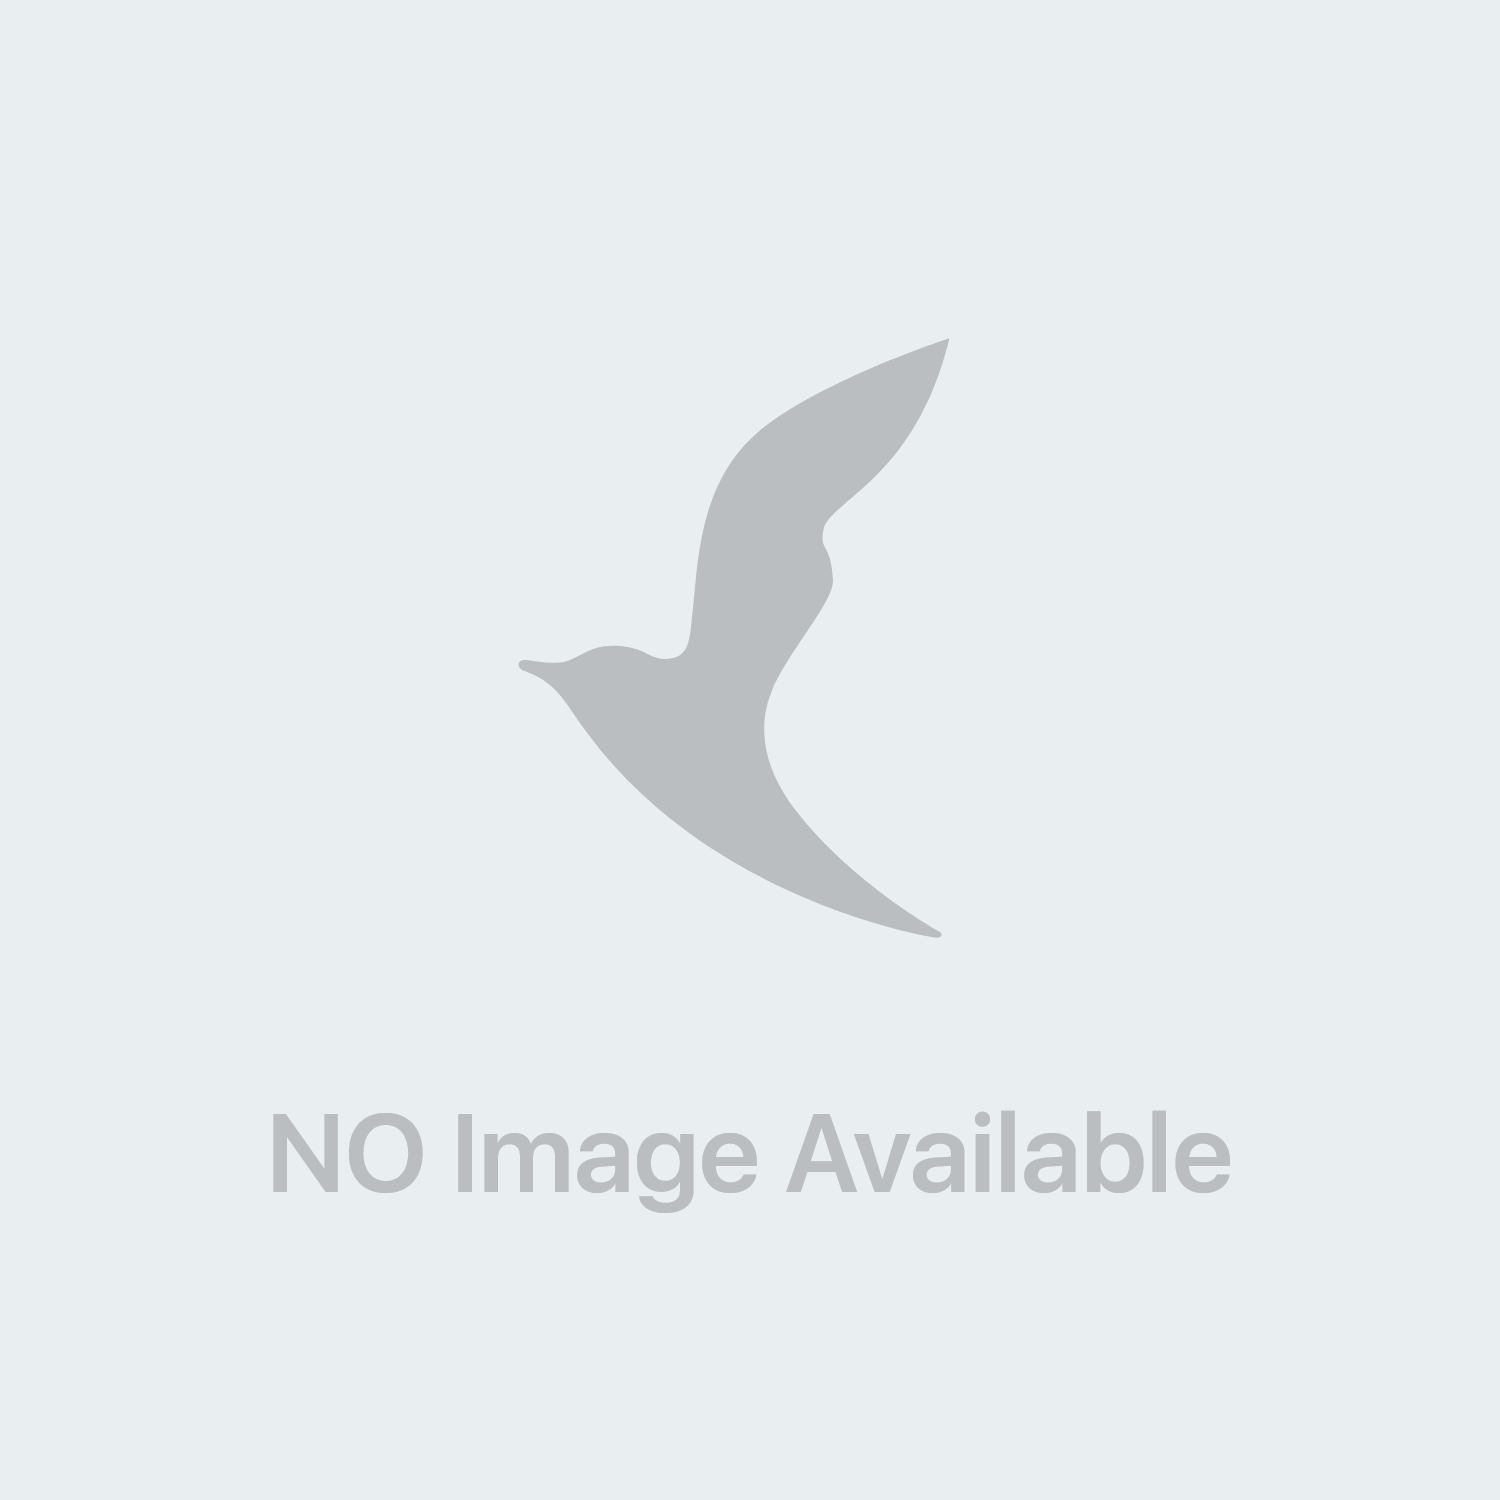 Pic Siringa Per Insulina 1ml 30g 8mm 30 Pezzi